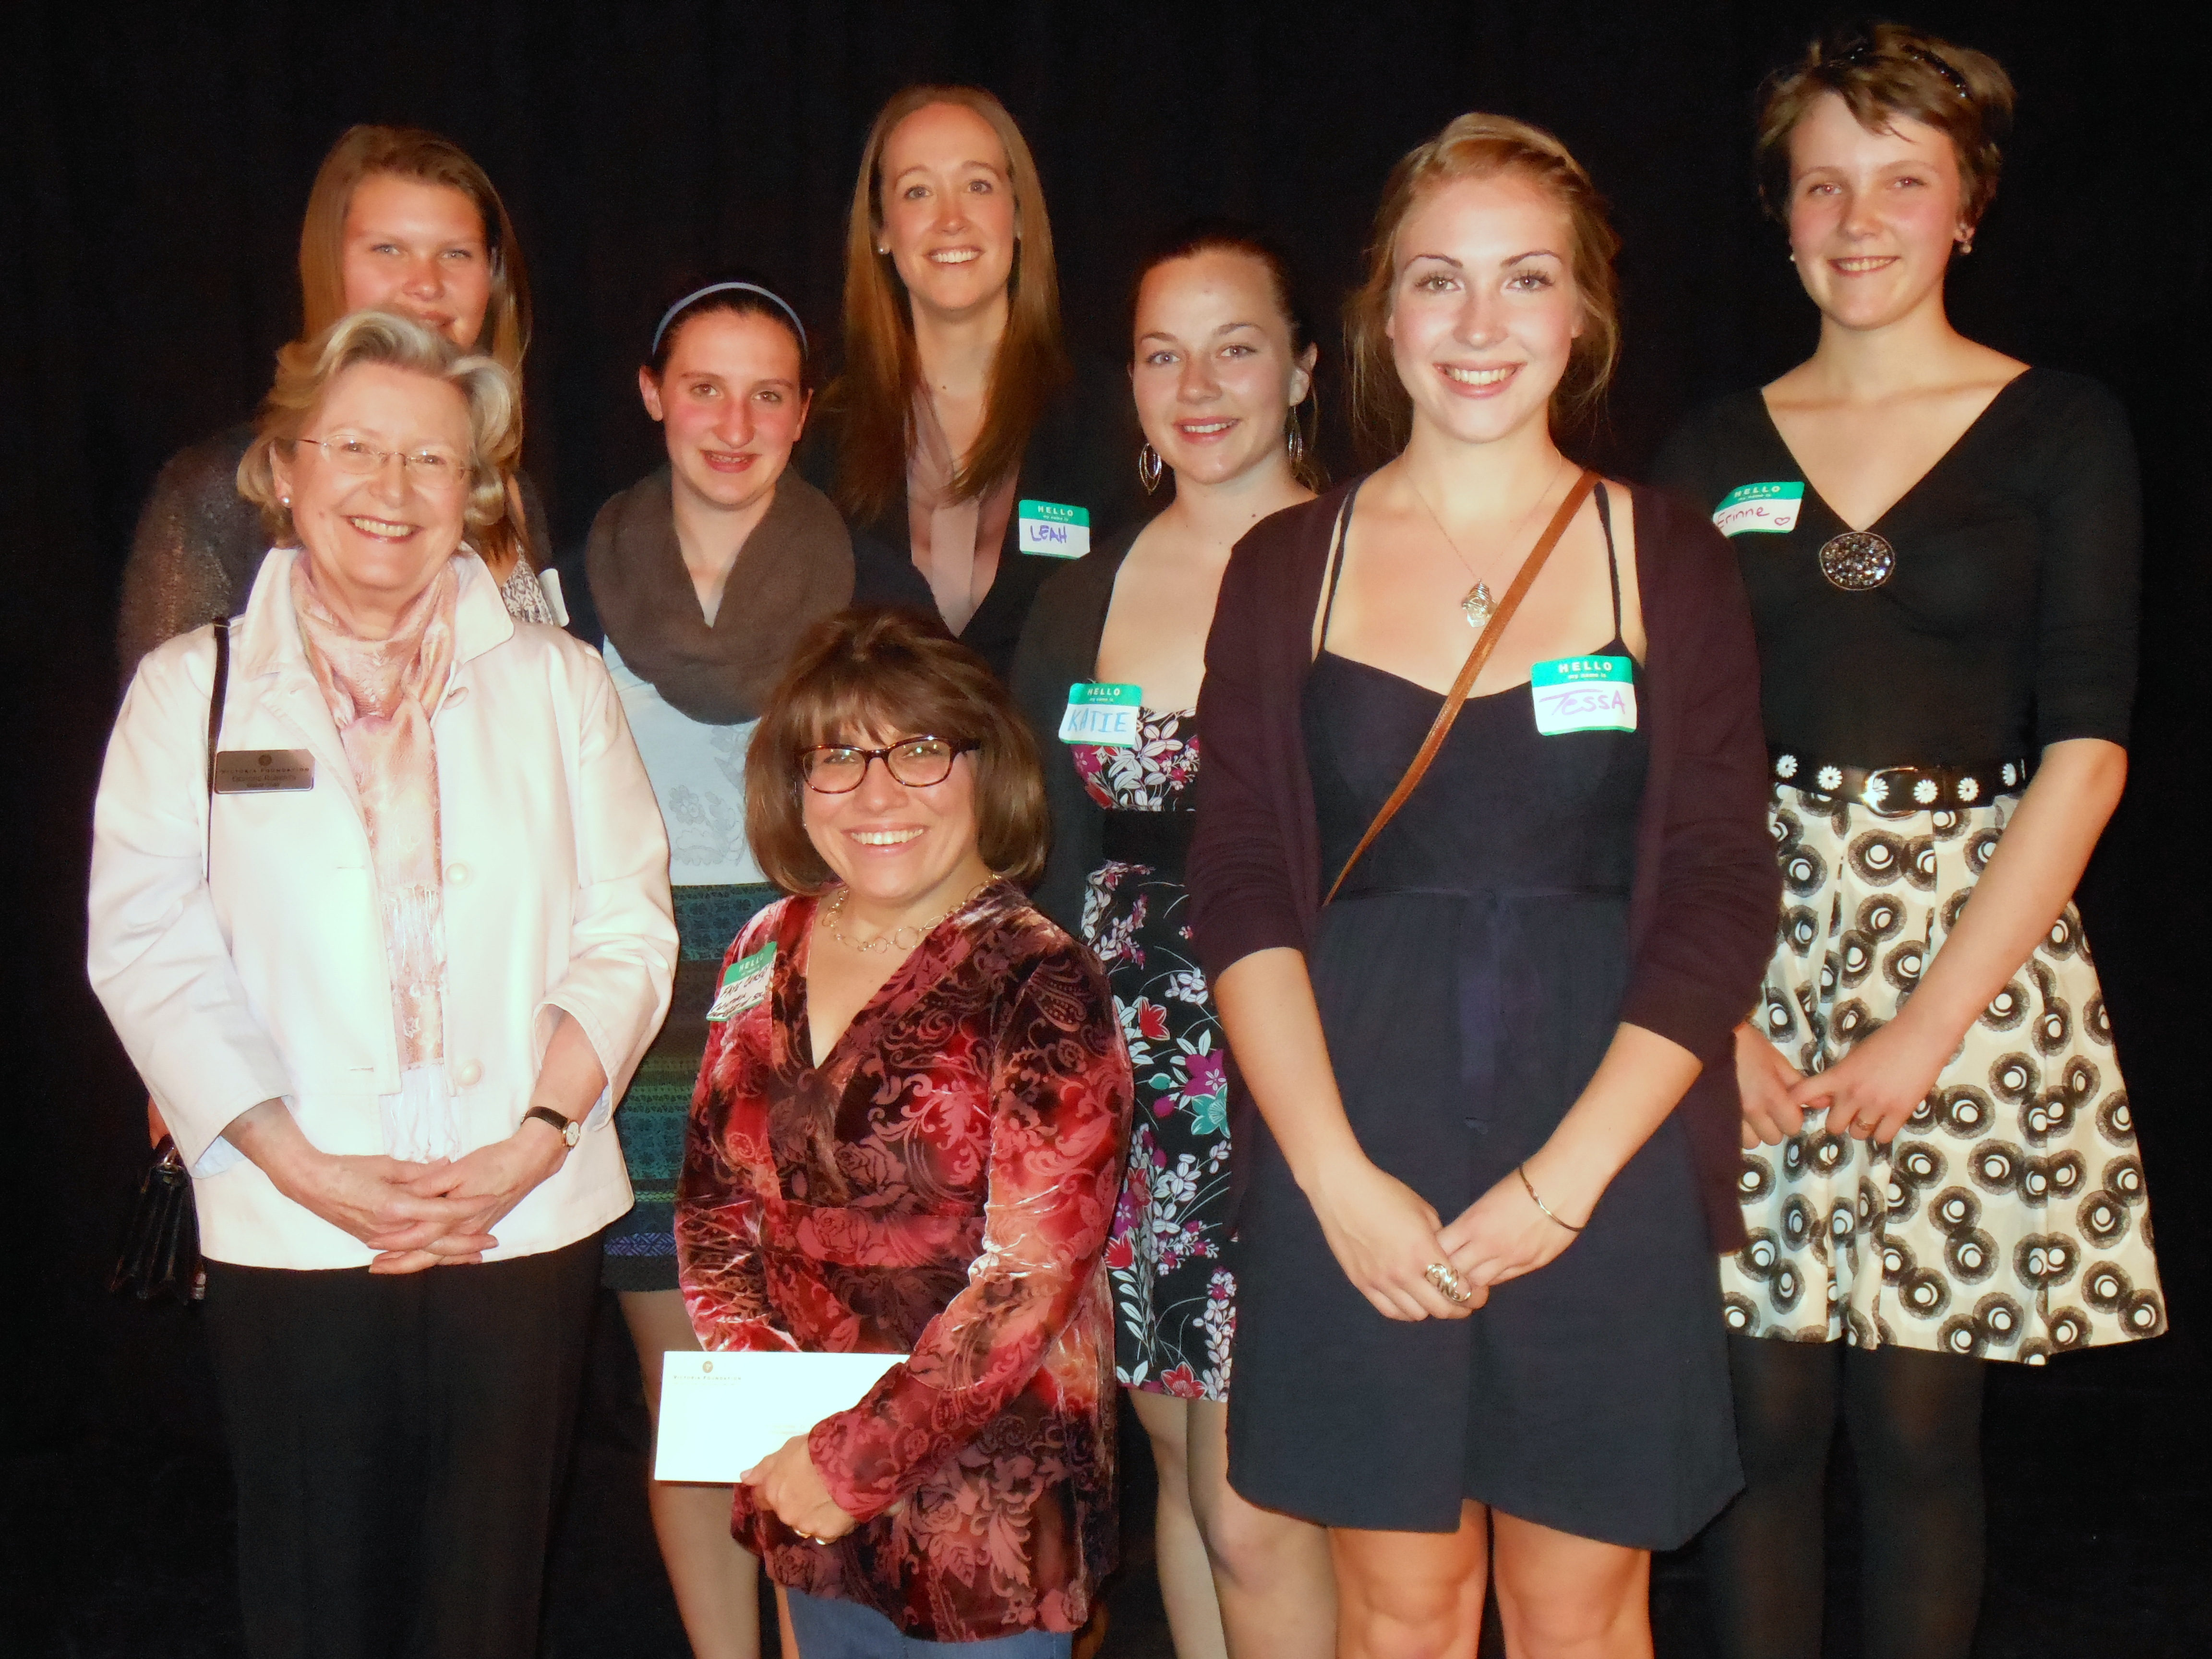 From left to right: Reynolds Secondary School Vital Youth representatives Kate Worthy, Sara McKinnon, Leah Baade, former Vital Youth Program Coordinator for the Victoria Foundation, students Katie Gamble, Tessa Fryer, Erinne Paisley. Front, left to right, Victoria Foundation Board Chair Deirdre Roberts and Faye Cawsey of Recreation Integration Victoria